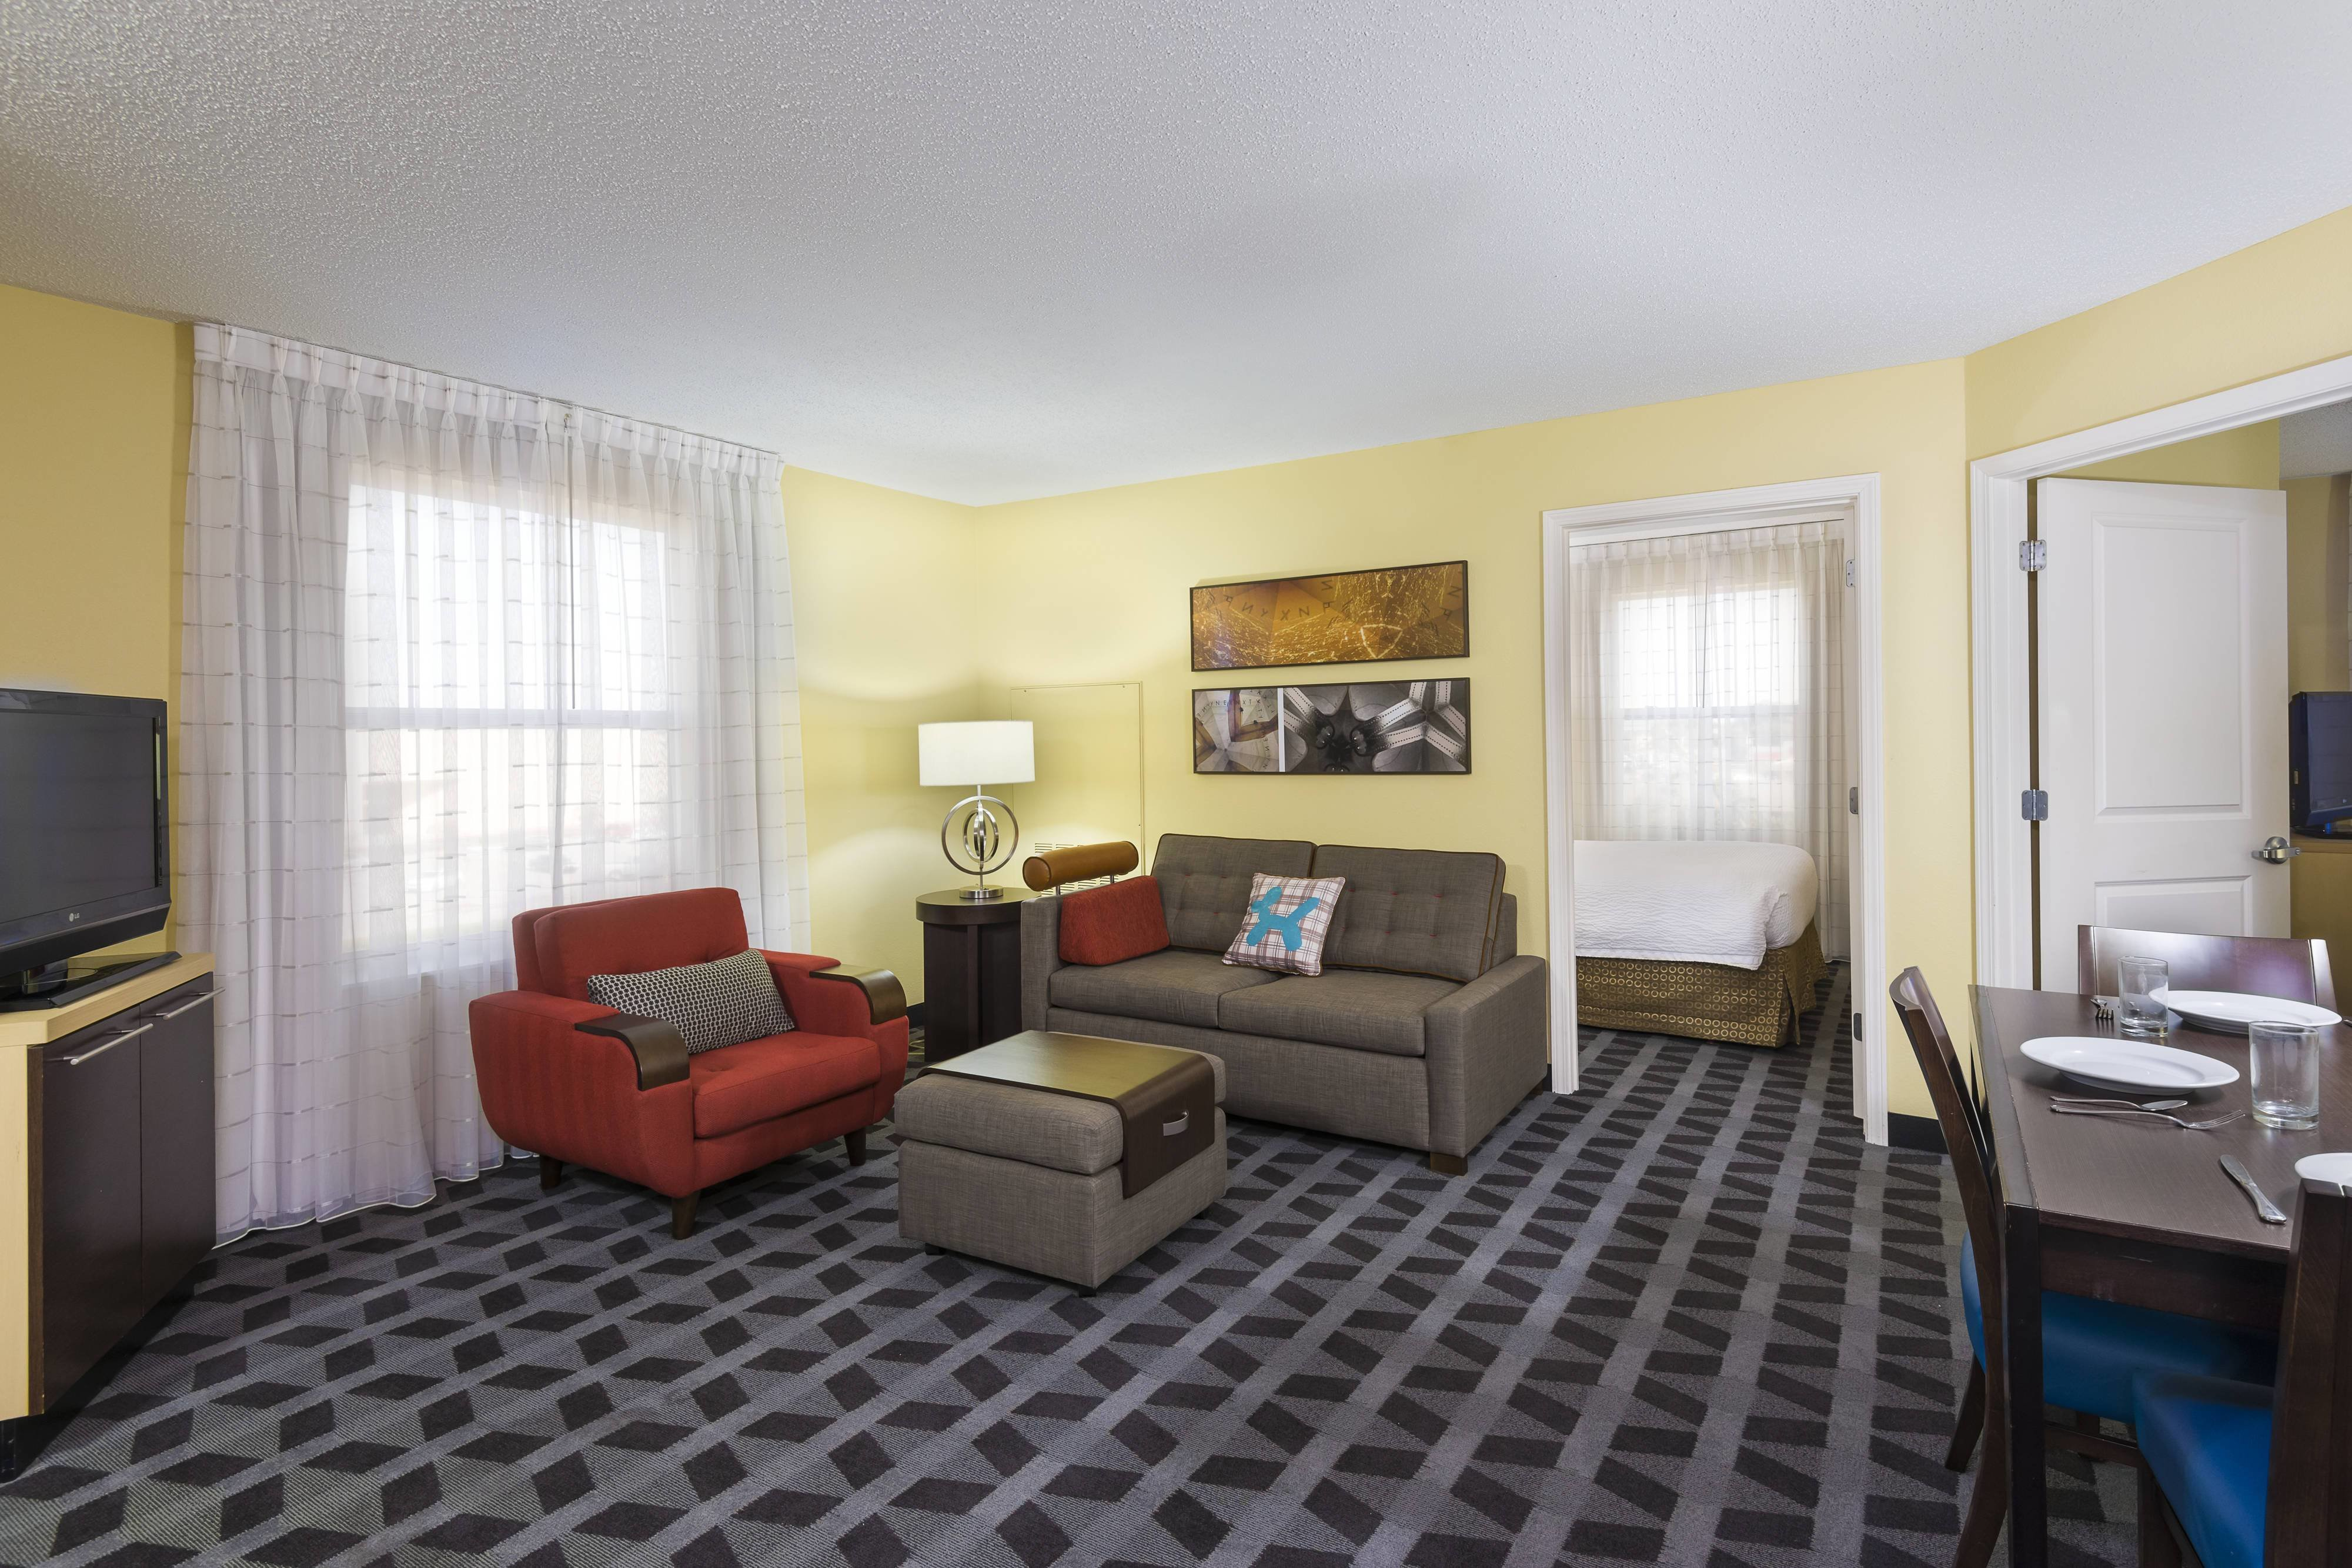 Best Hotels In Pensacola Fl Towneplace Suites Pensacola With Pictures